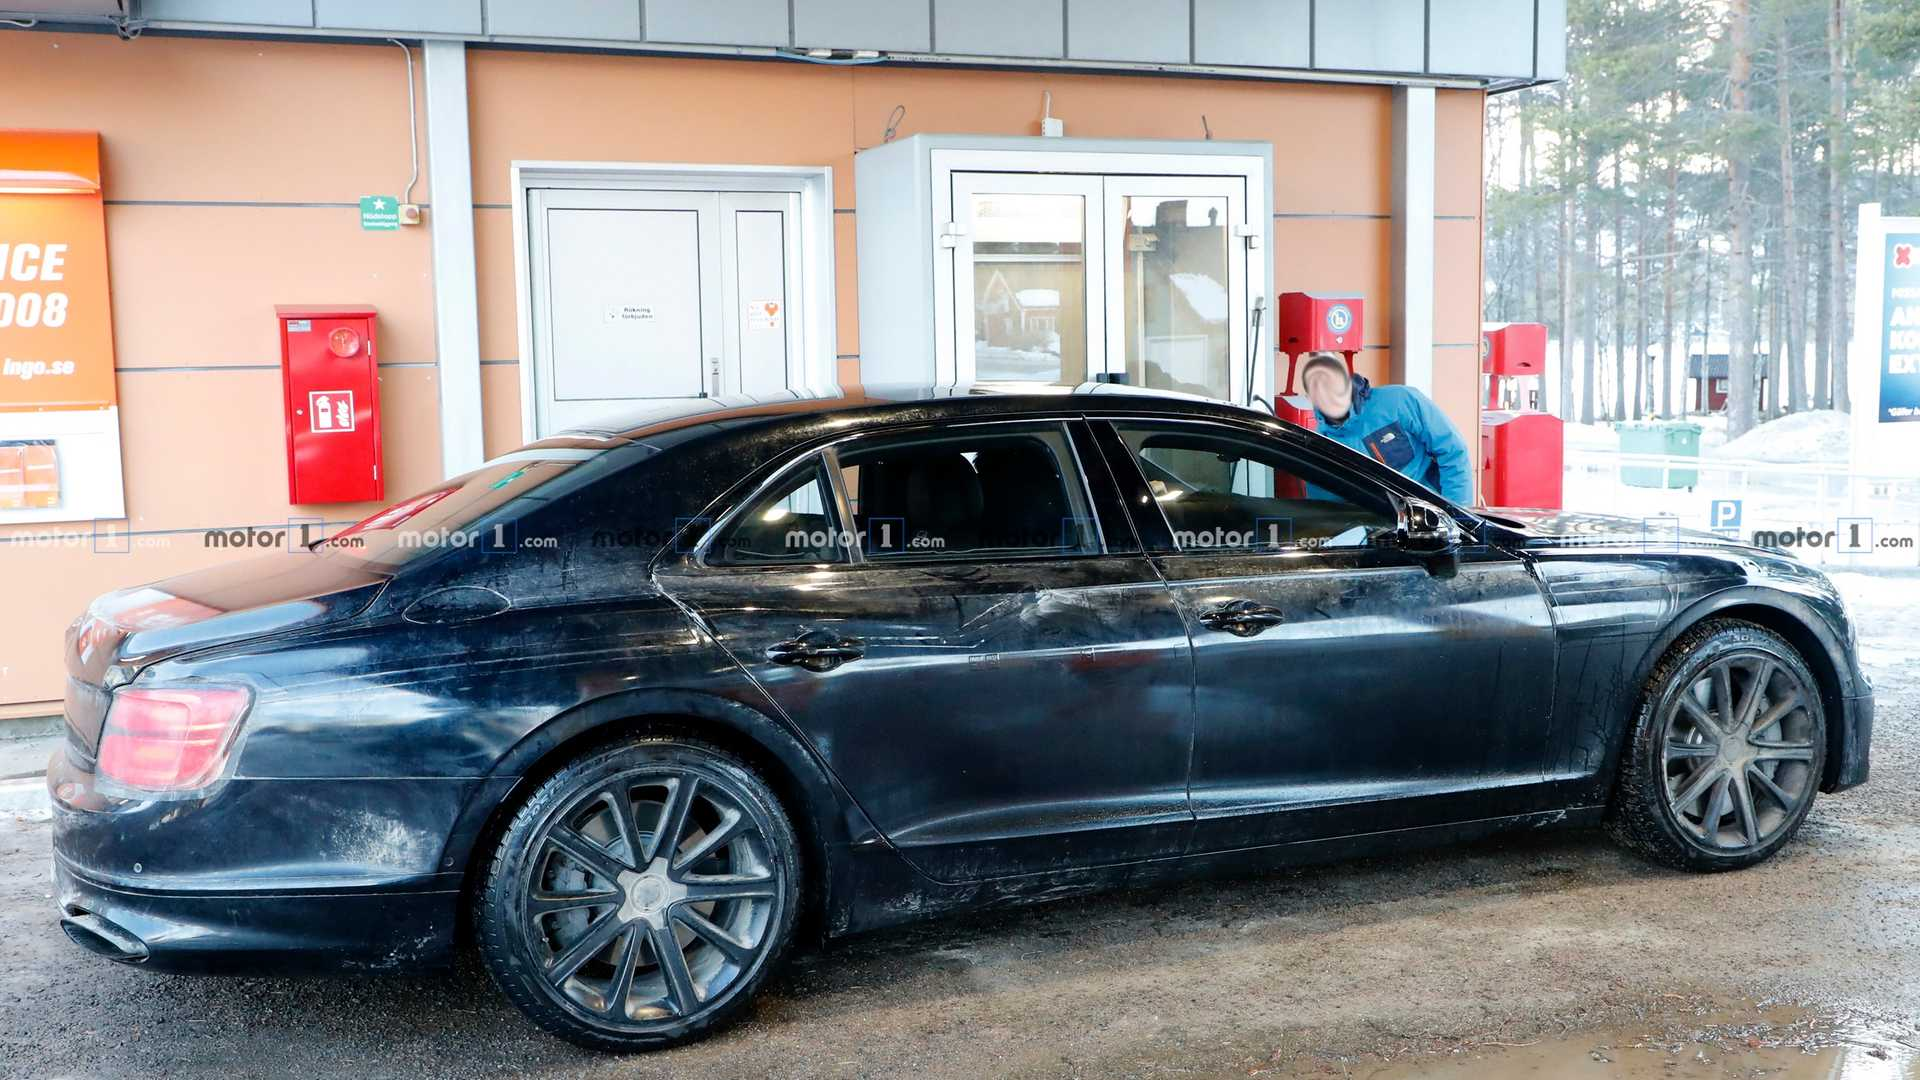 52 New 2020 Bentley Flying Spur Overview